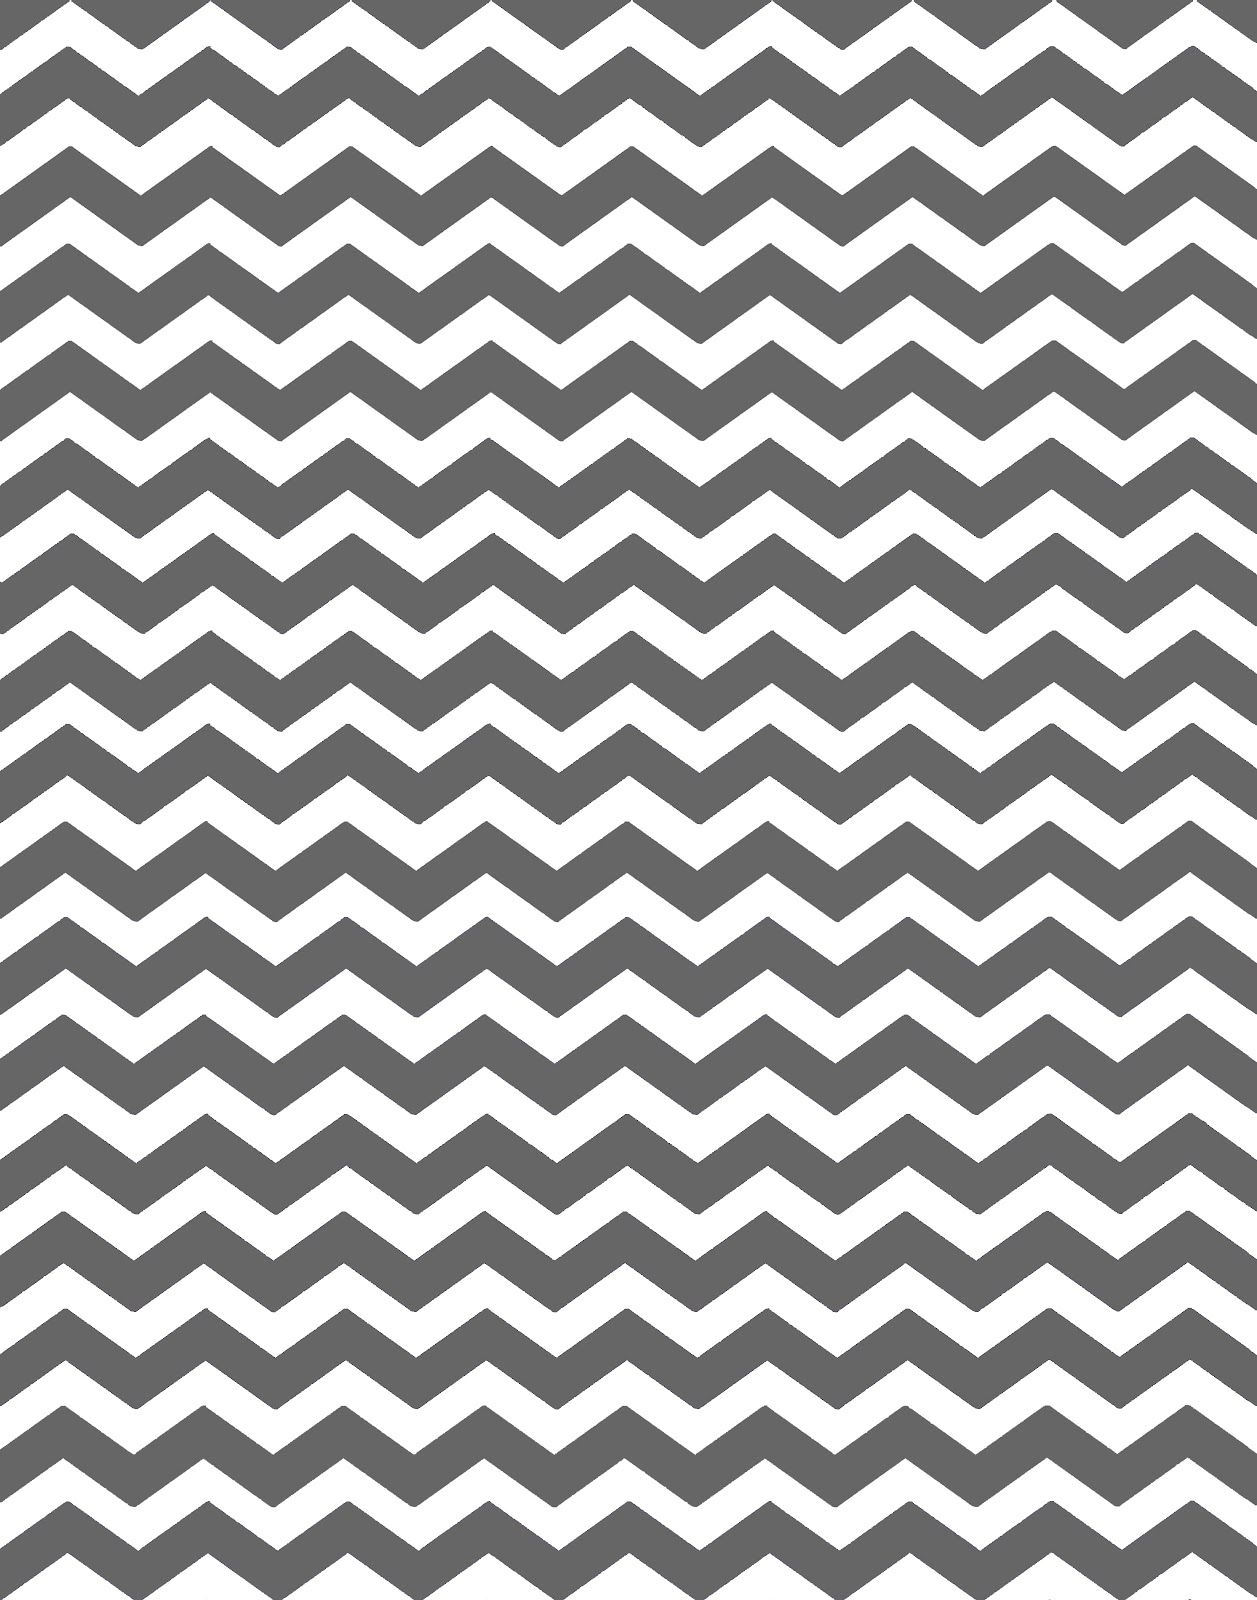 16 New Colors Chevron background patterns! Chevron